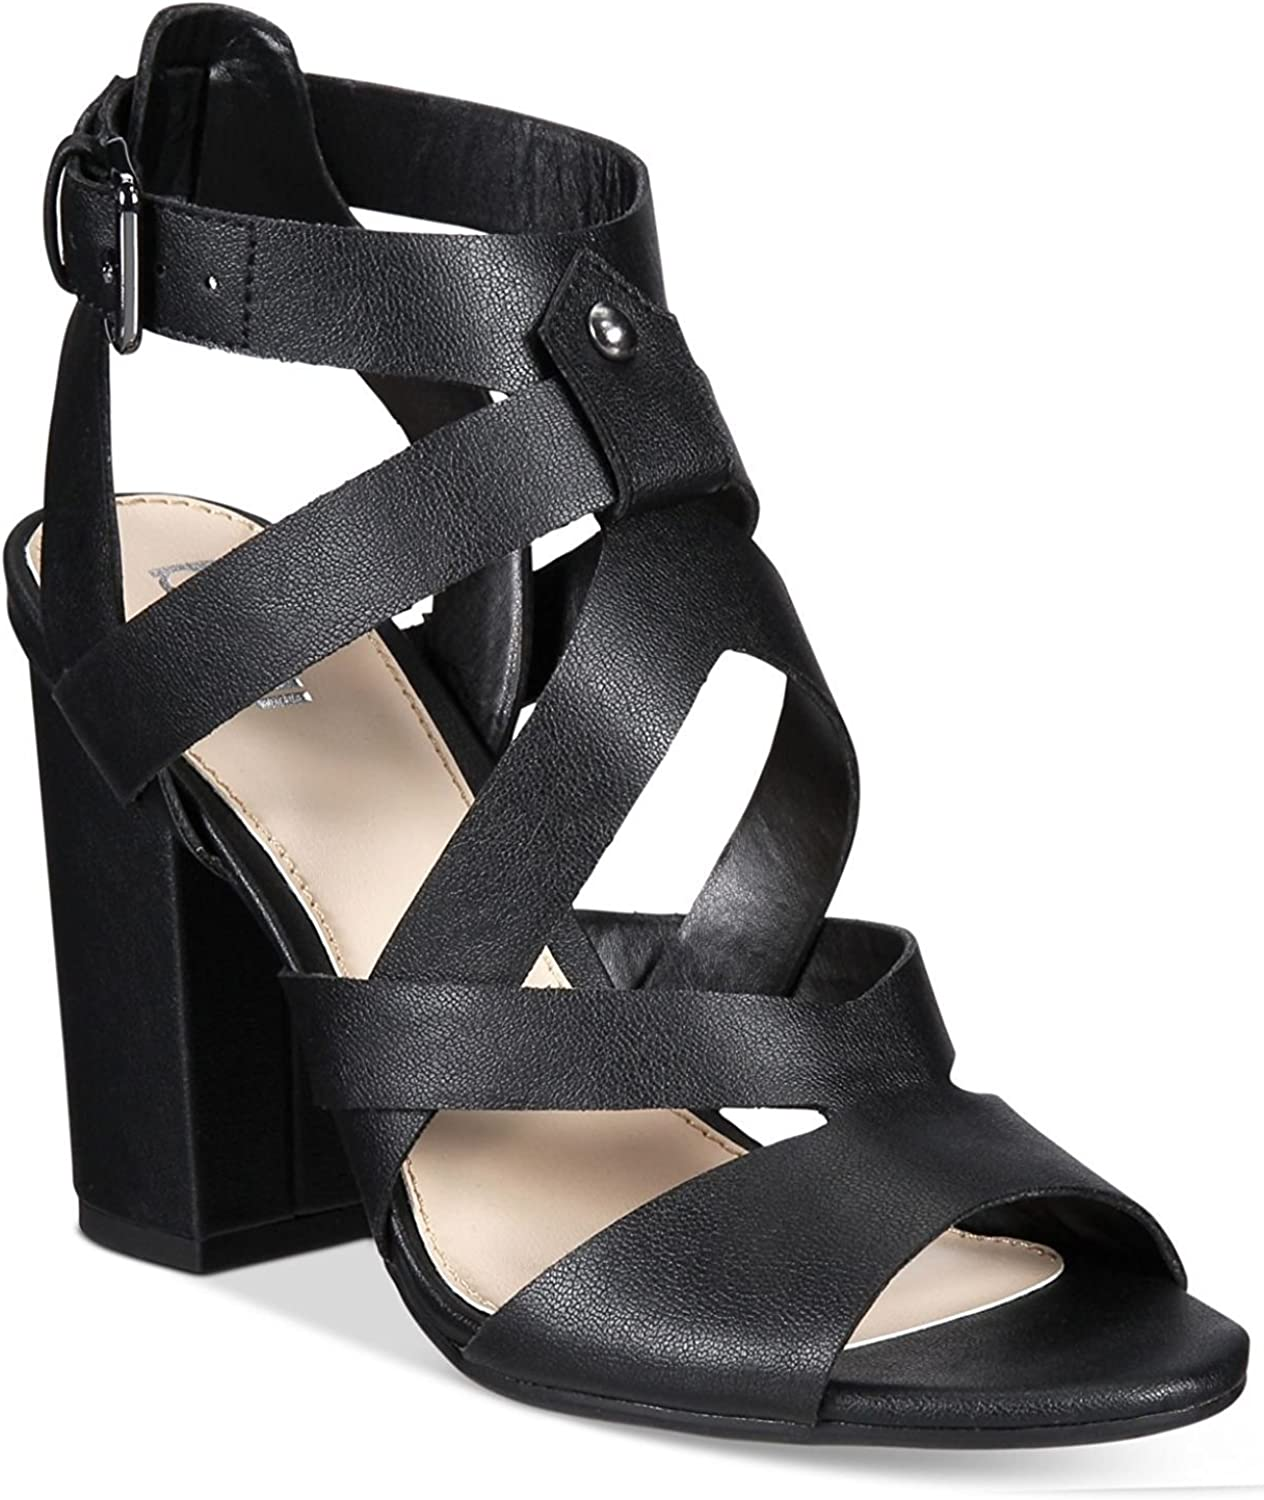 Bar III Womens Mae Peep Toe Casual Strappy Sandals, Black, Size 9.5